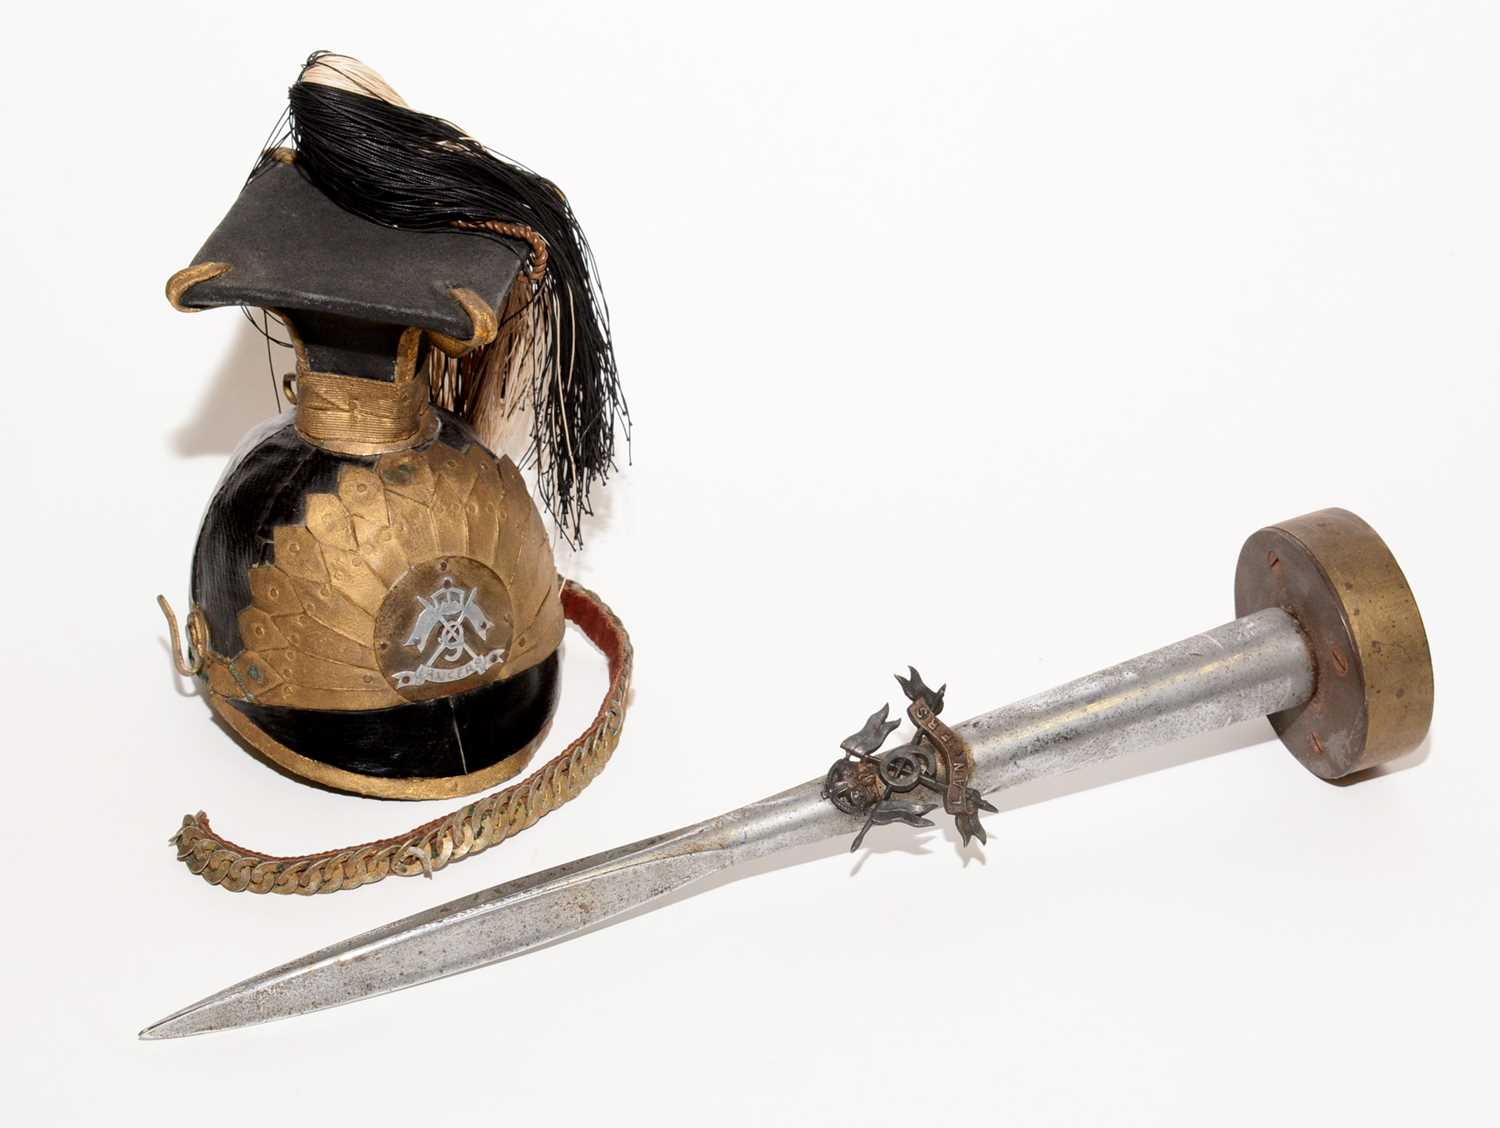 Lot 1068 - An 1868 pattern lance head, together with a miniature replica of a 9th Lancers cap